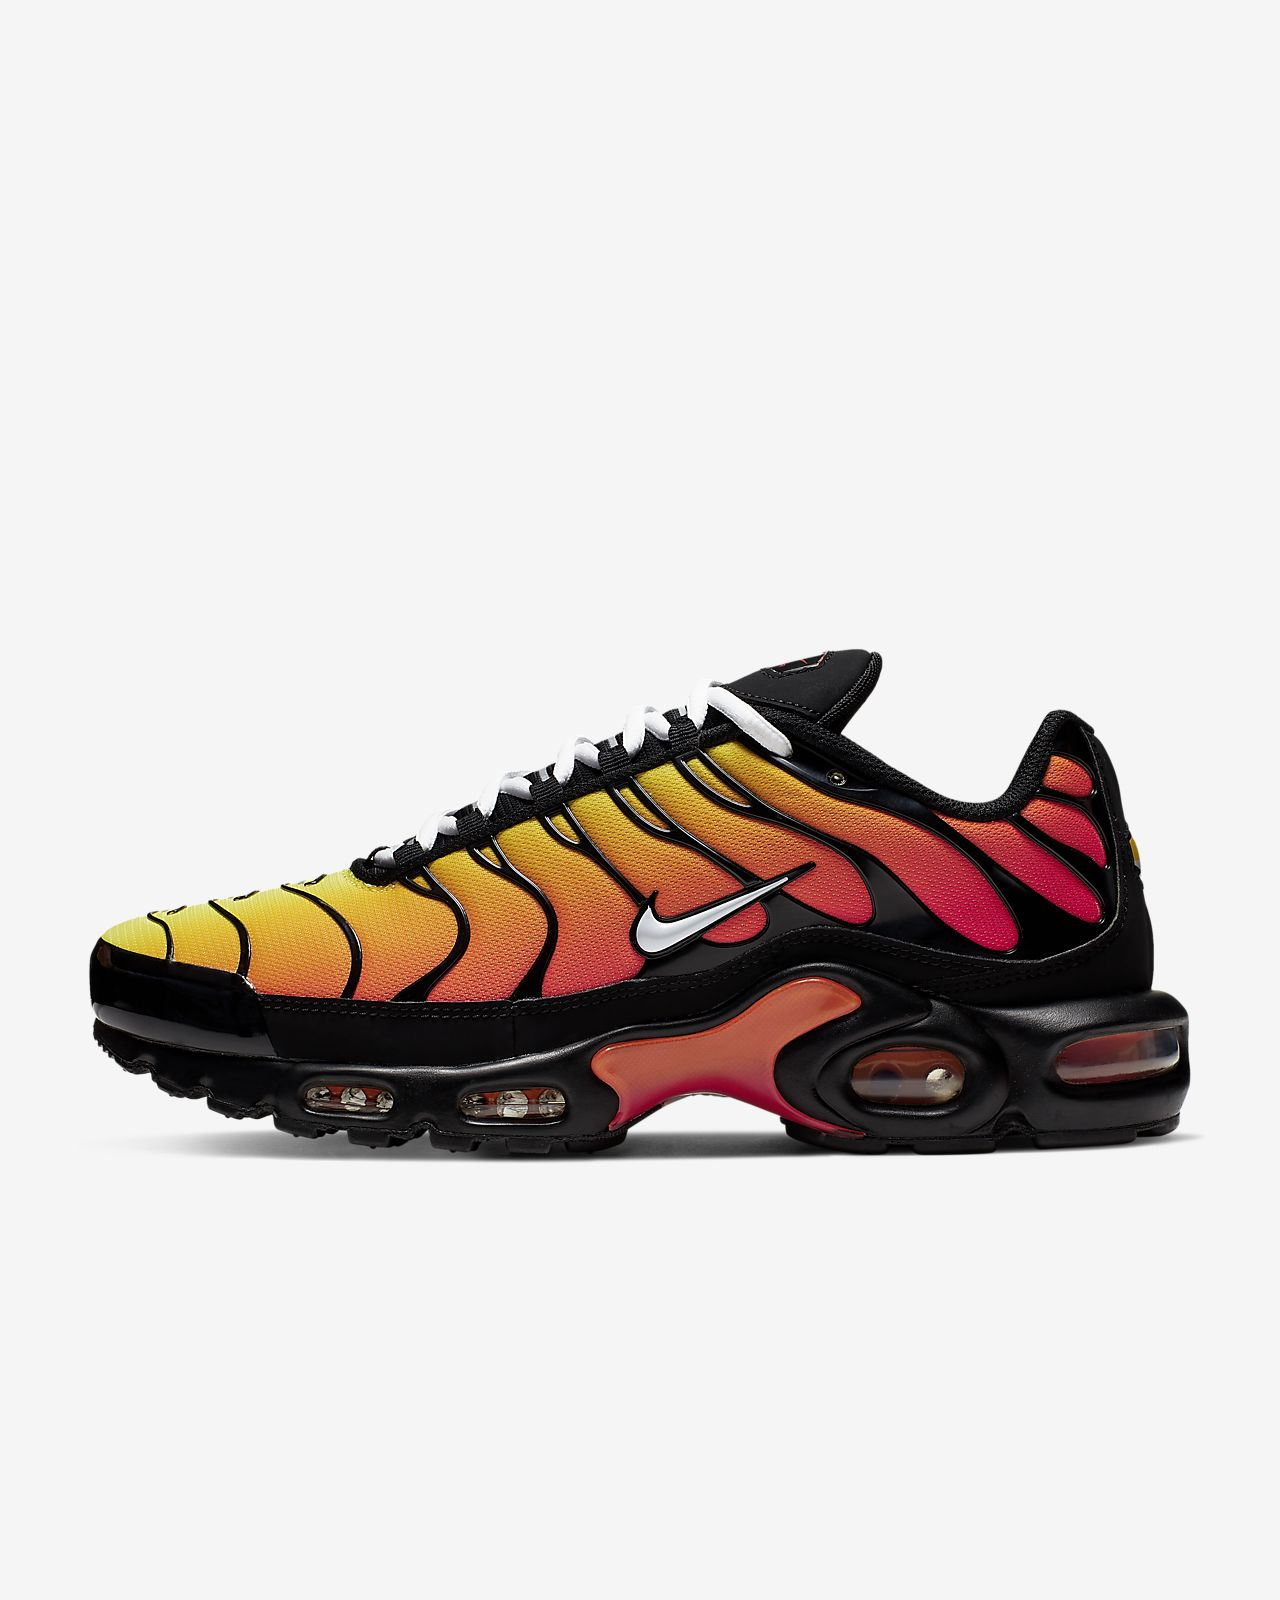 detailed look 3ad74 6d88b ... Nike Air Max Plus Men s Shoe